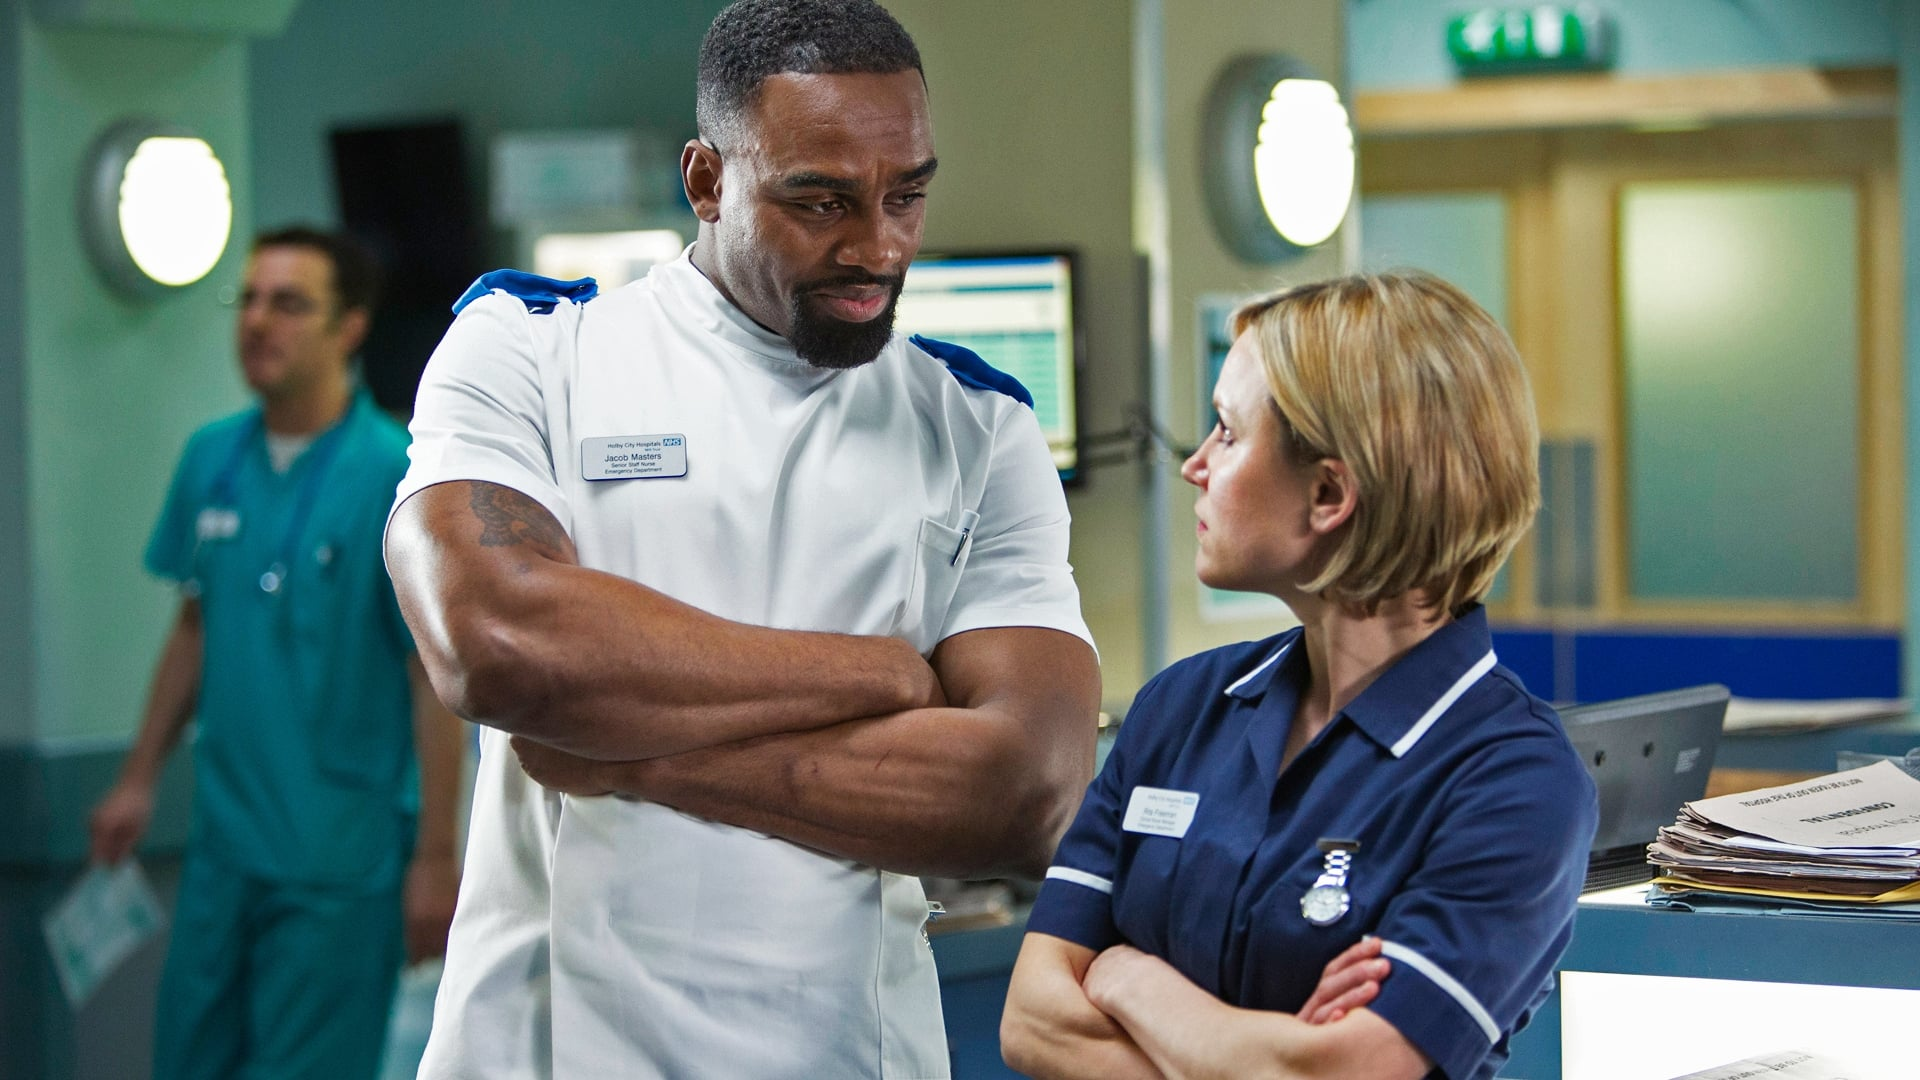 Casualty Season 29 :Episode 41  The Next Step